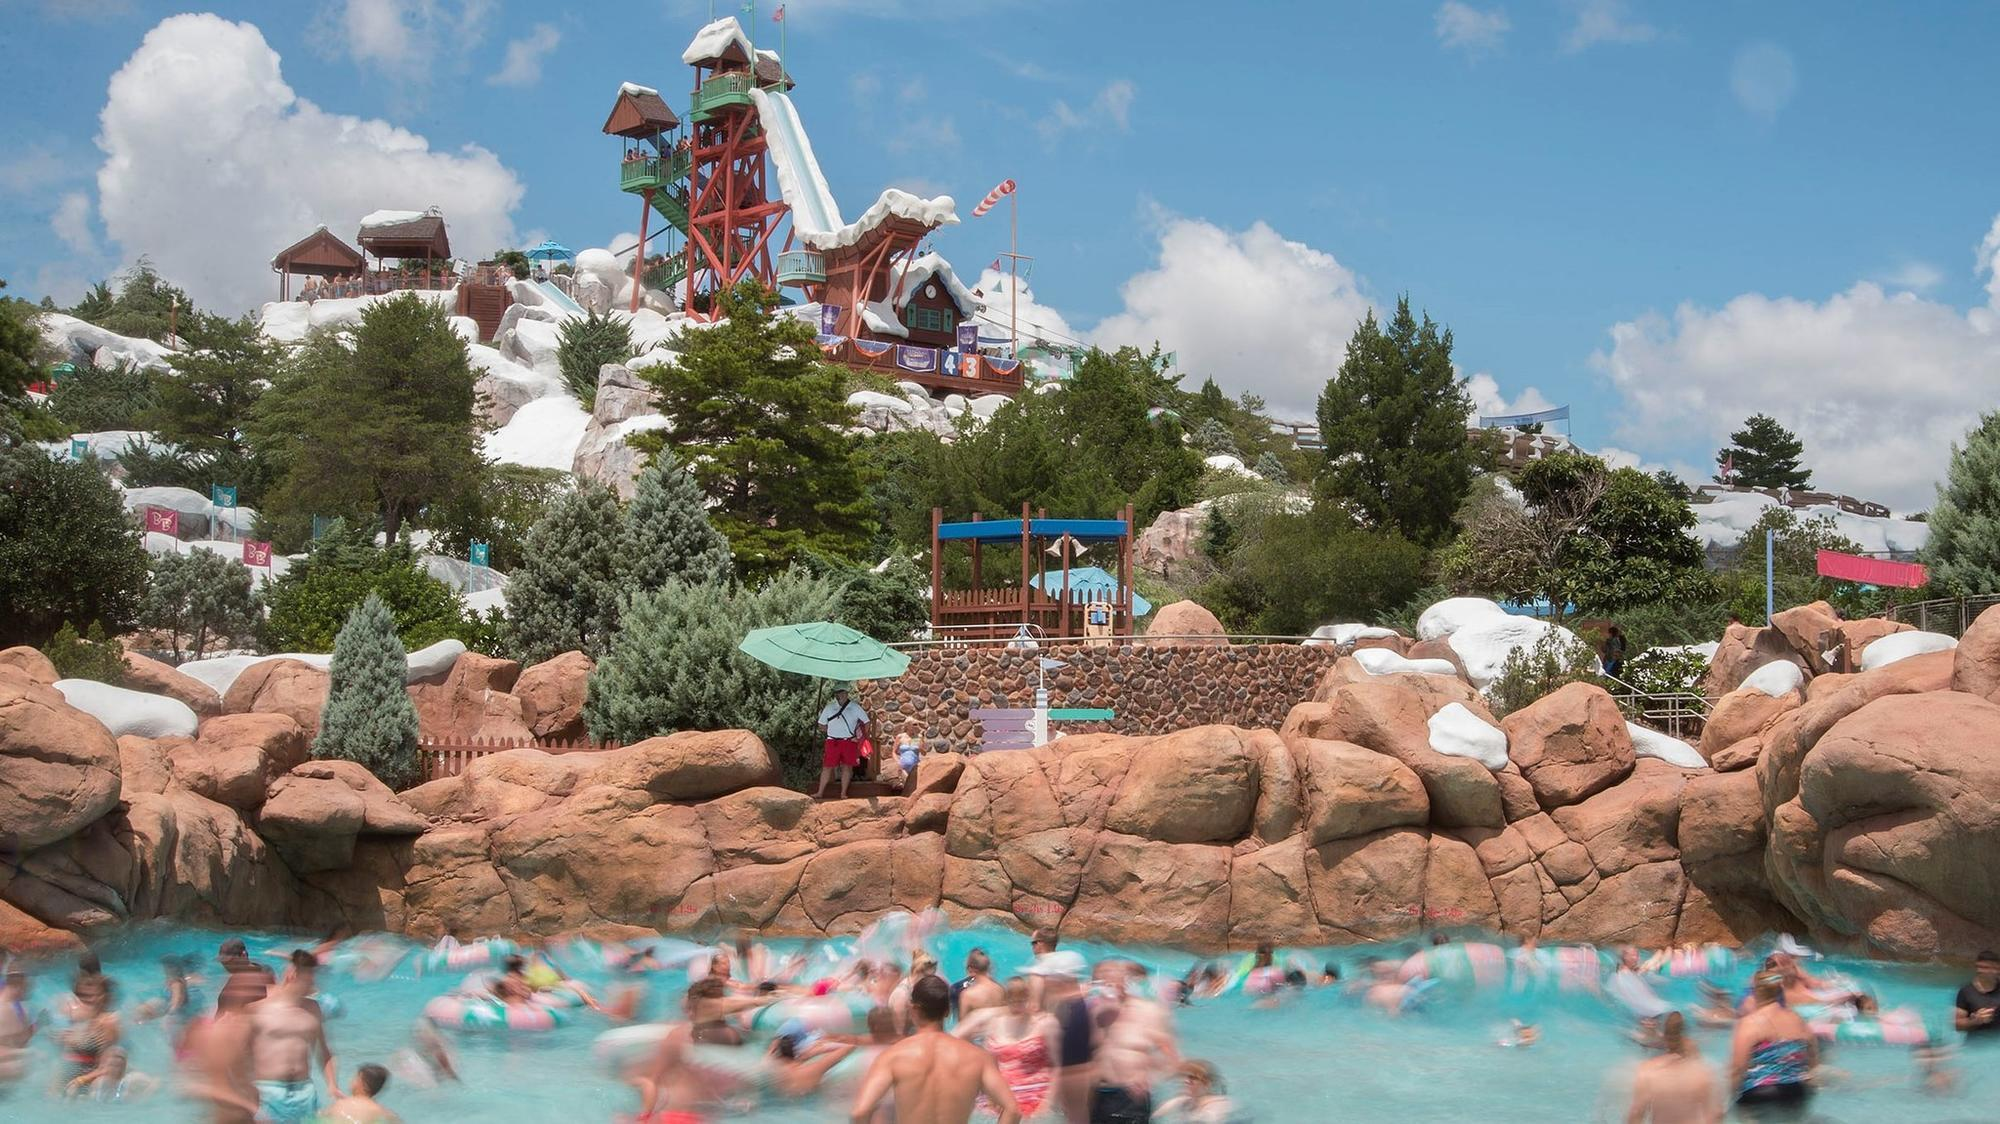 Tourist S After Heart At Disney Blizzard Beach Orlando Sentinel